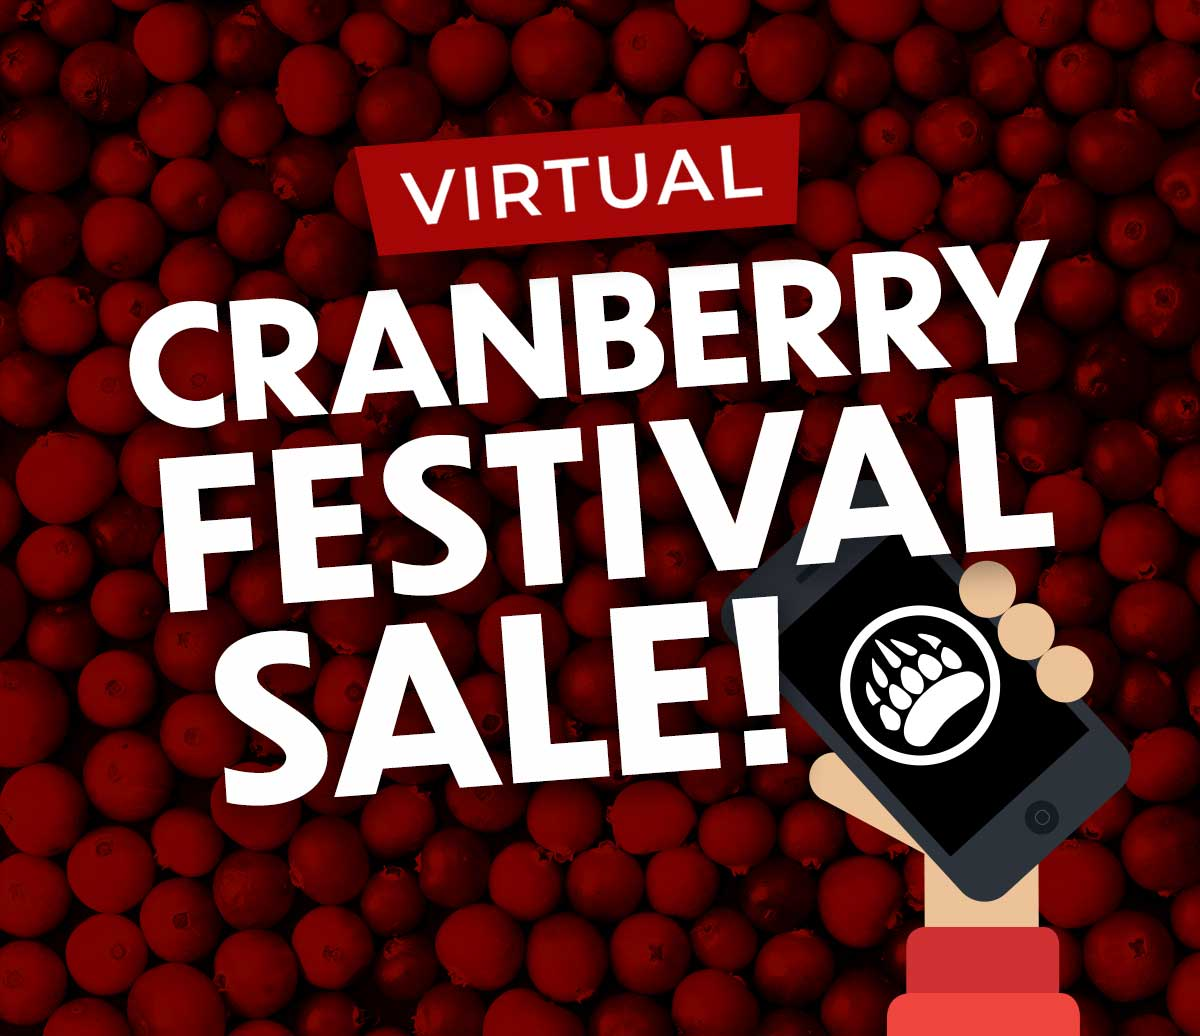 Virtual Cranberry Festival Sale!